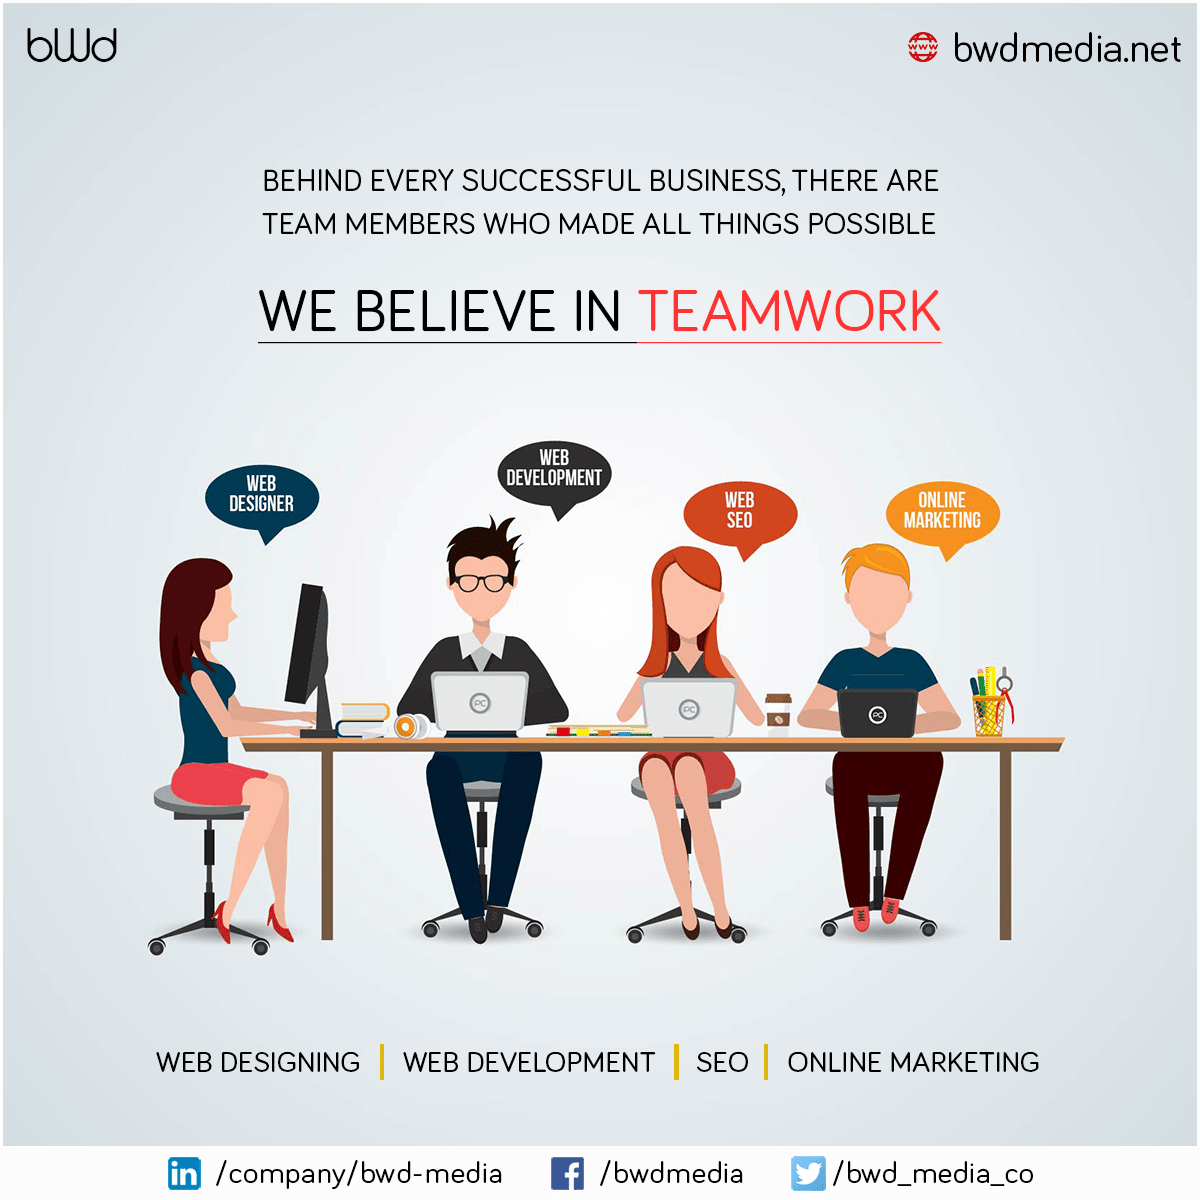 Behind every successful #business, There are team members who made all things possible. #bwdmedia We believe in #teamwork. For more - https://bwdmedia.net/services